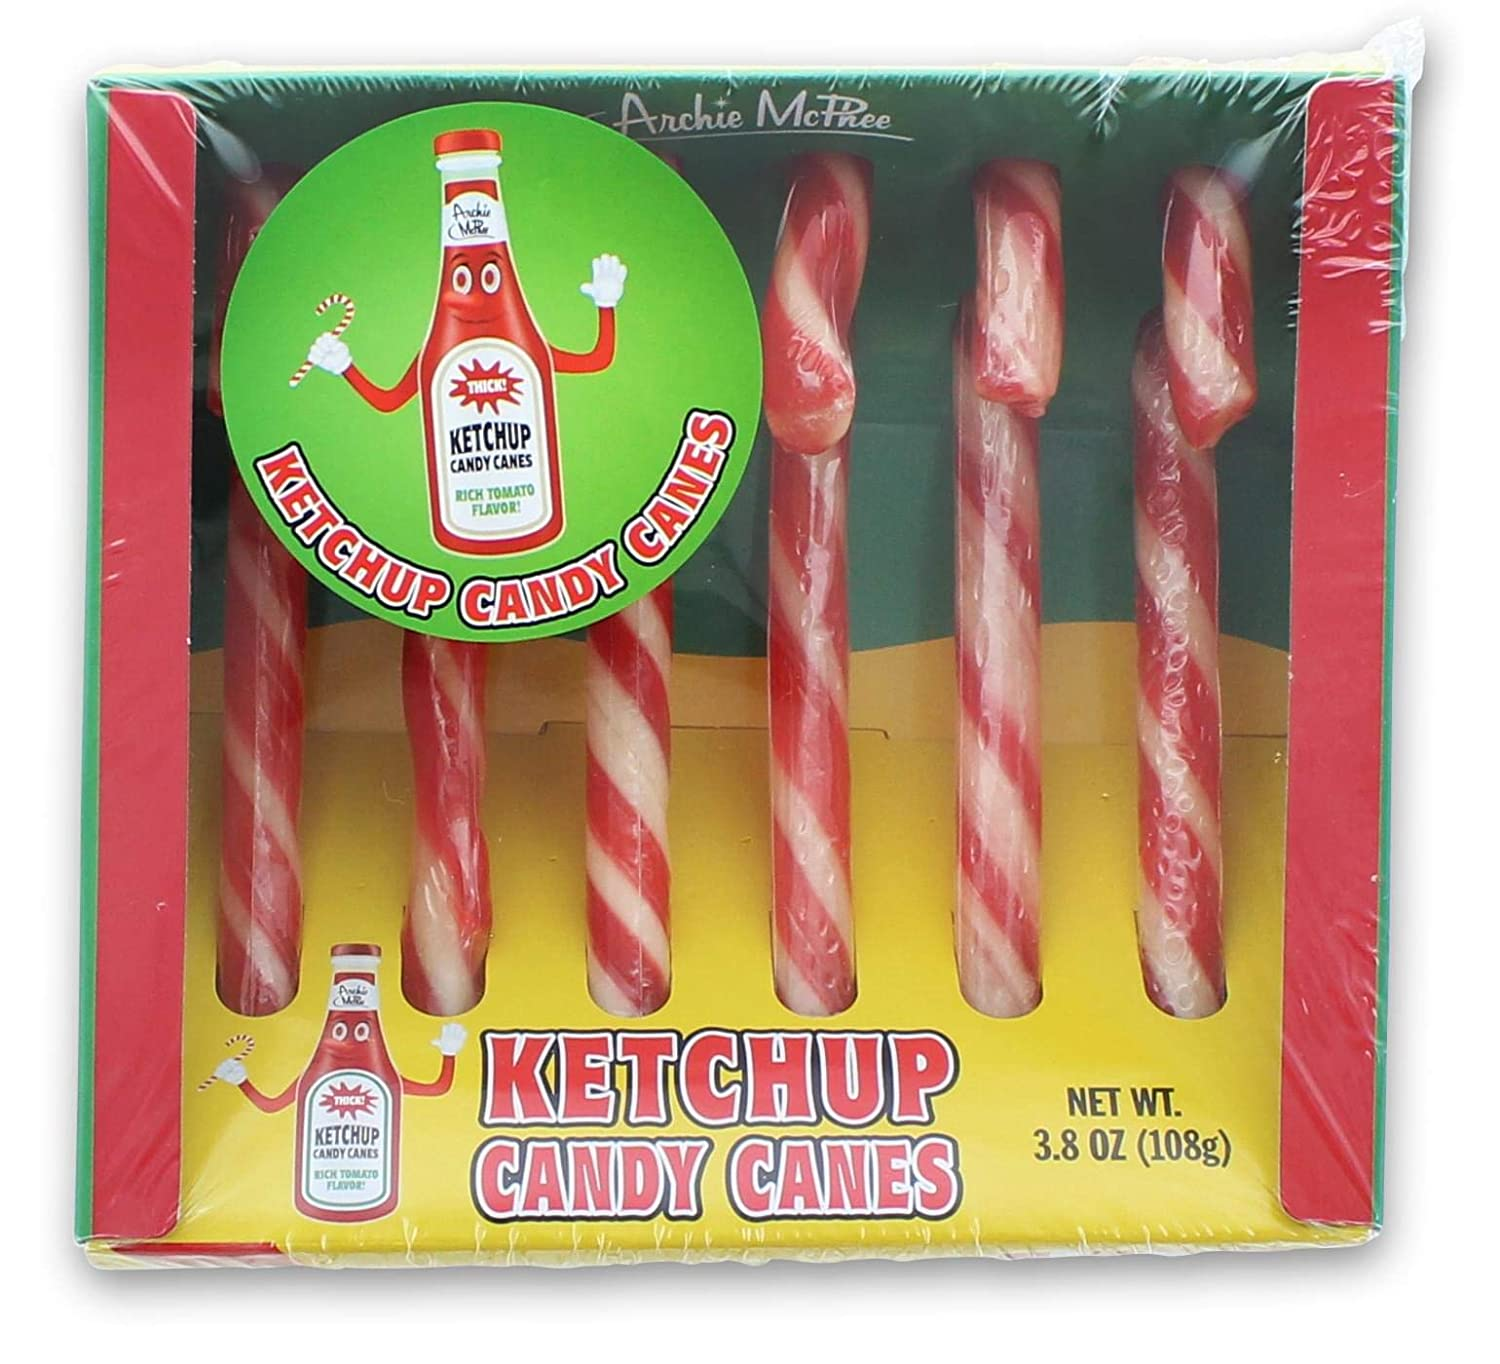 Archie McPhee Gift Box of Funny Ketchup Candy Cane Ranking TOP11 3.8 Ounce Max 85% OFF